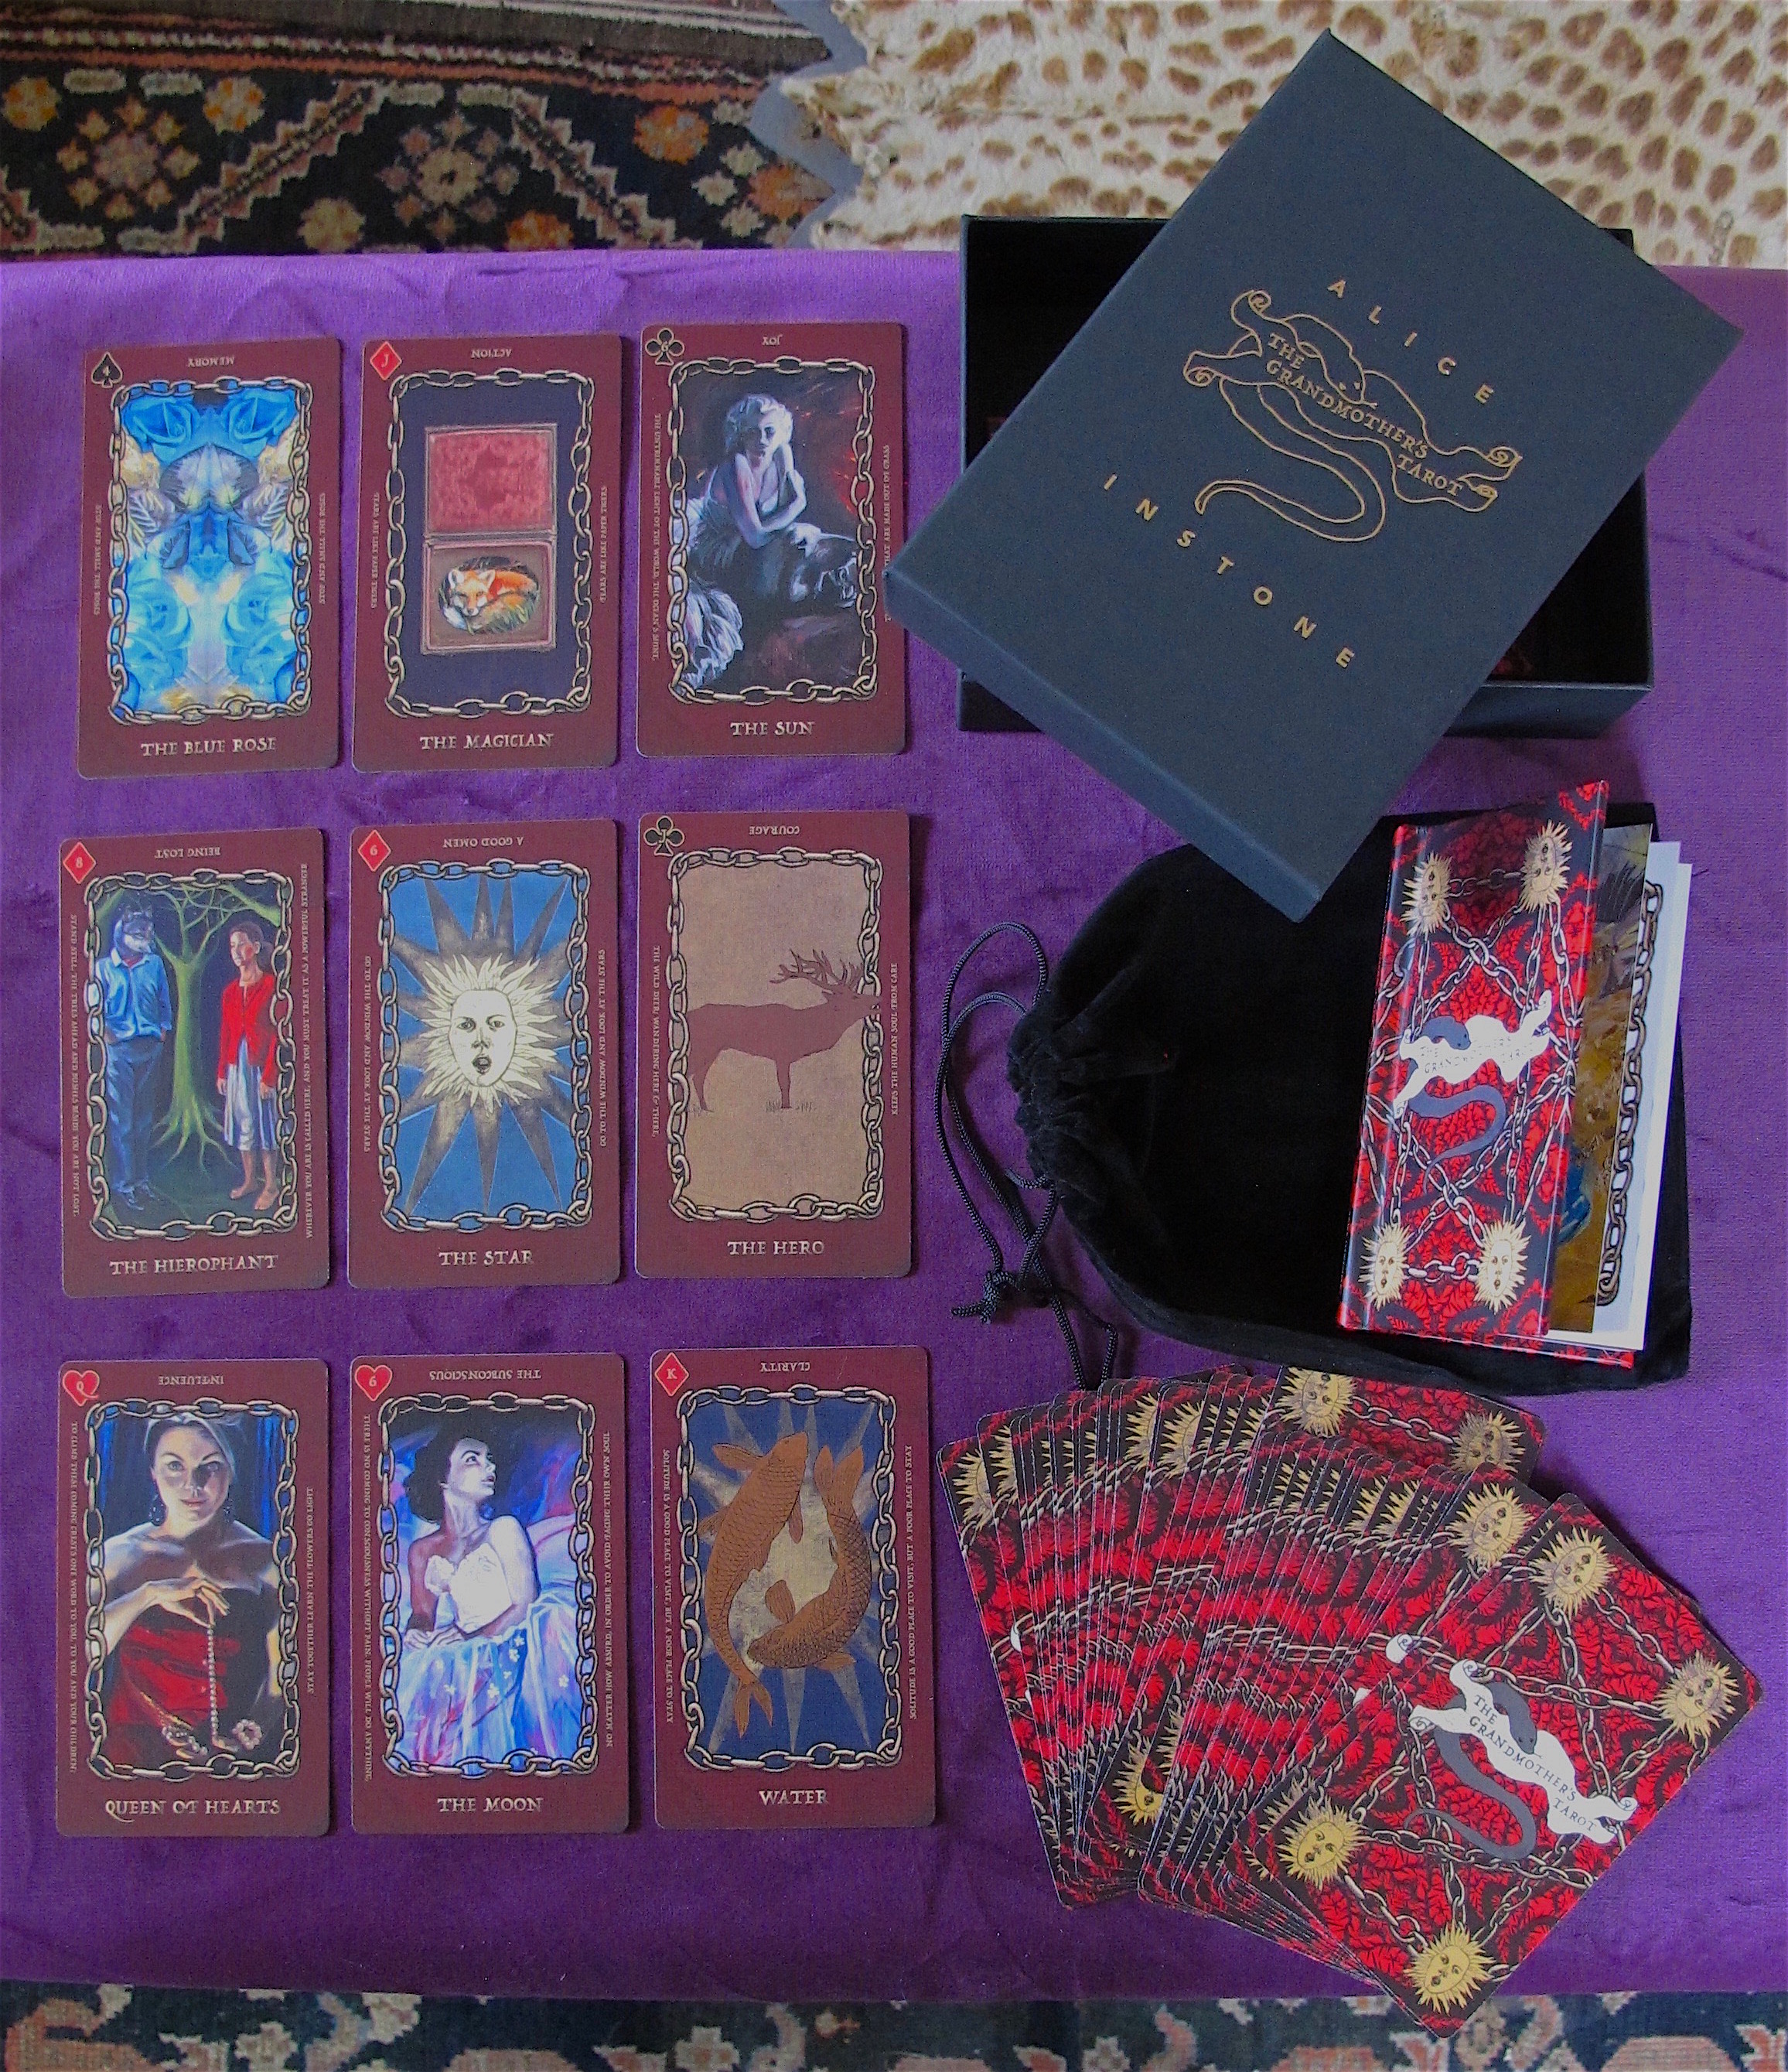 card and book set.jpg